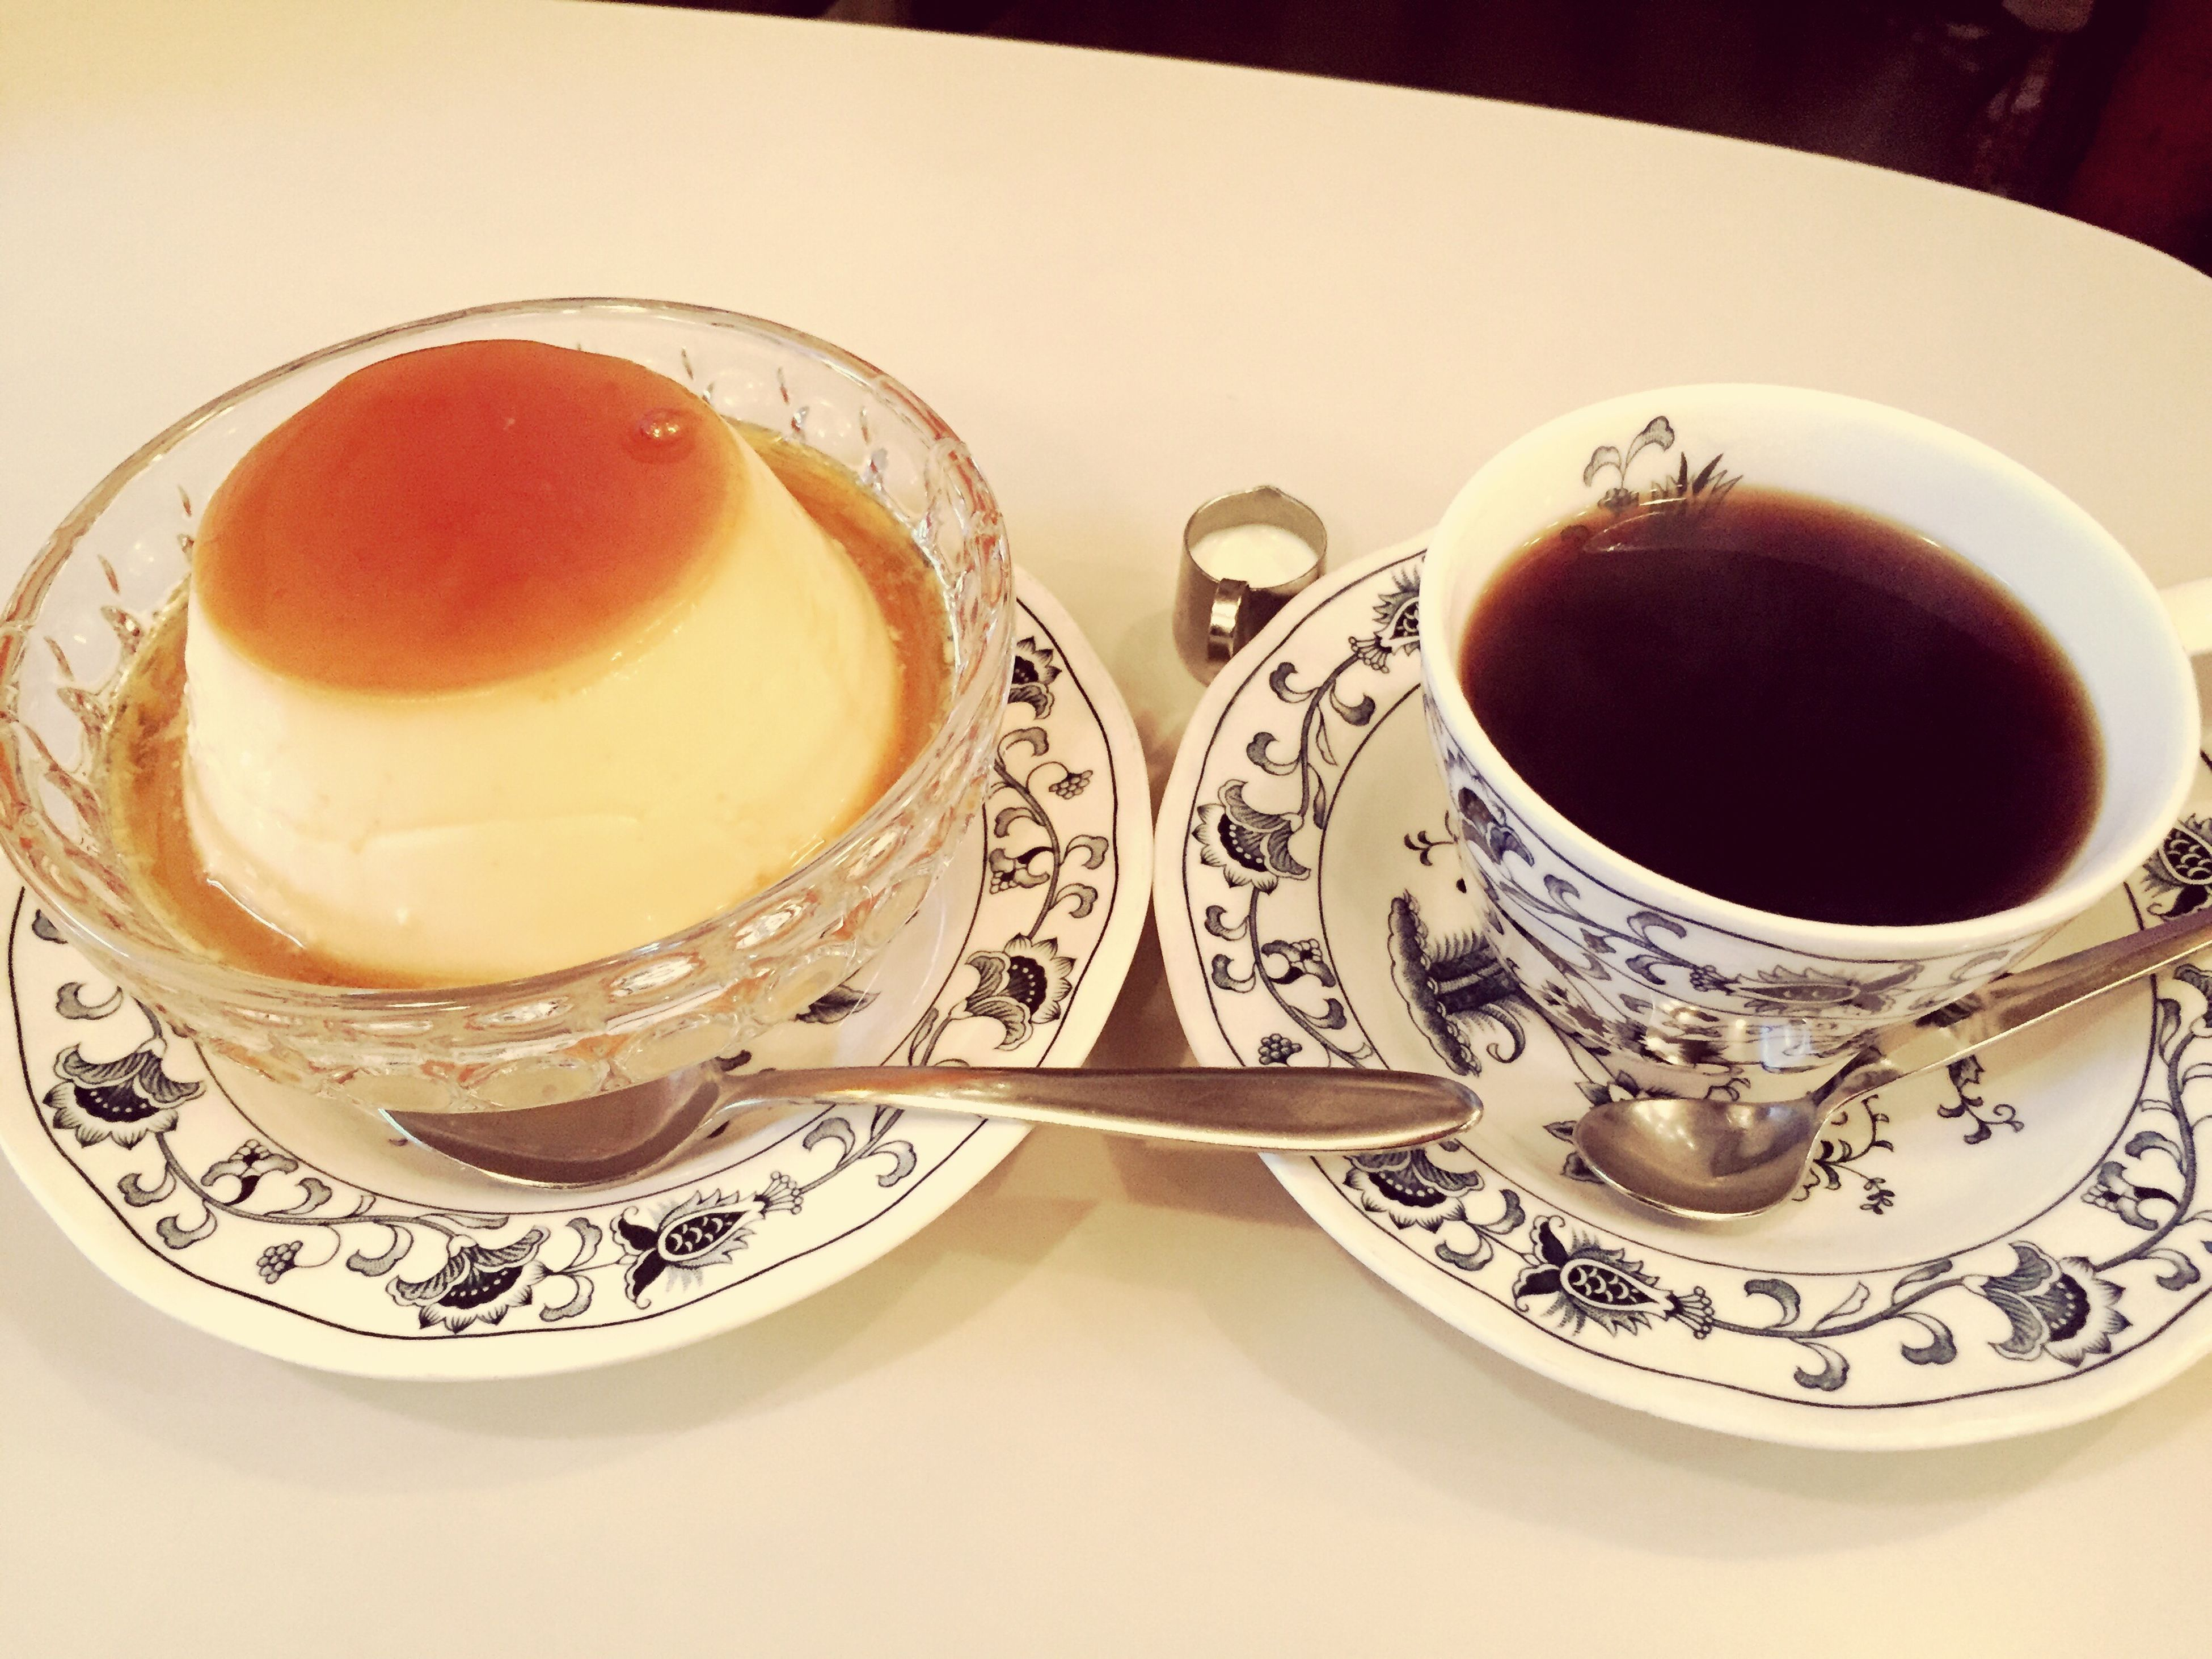 EyeEm Check This Out Hello World Relaxing Taking Photos Enjoying Life Delicious Coffee Tokyo Japan